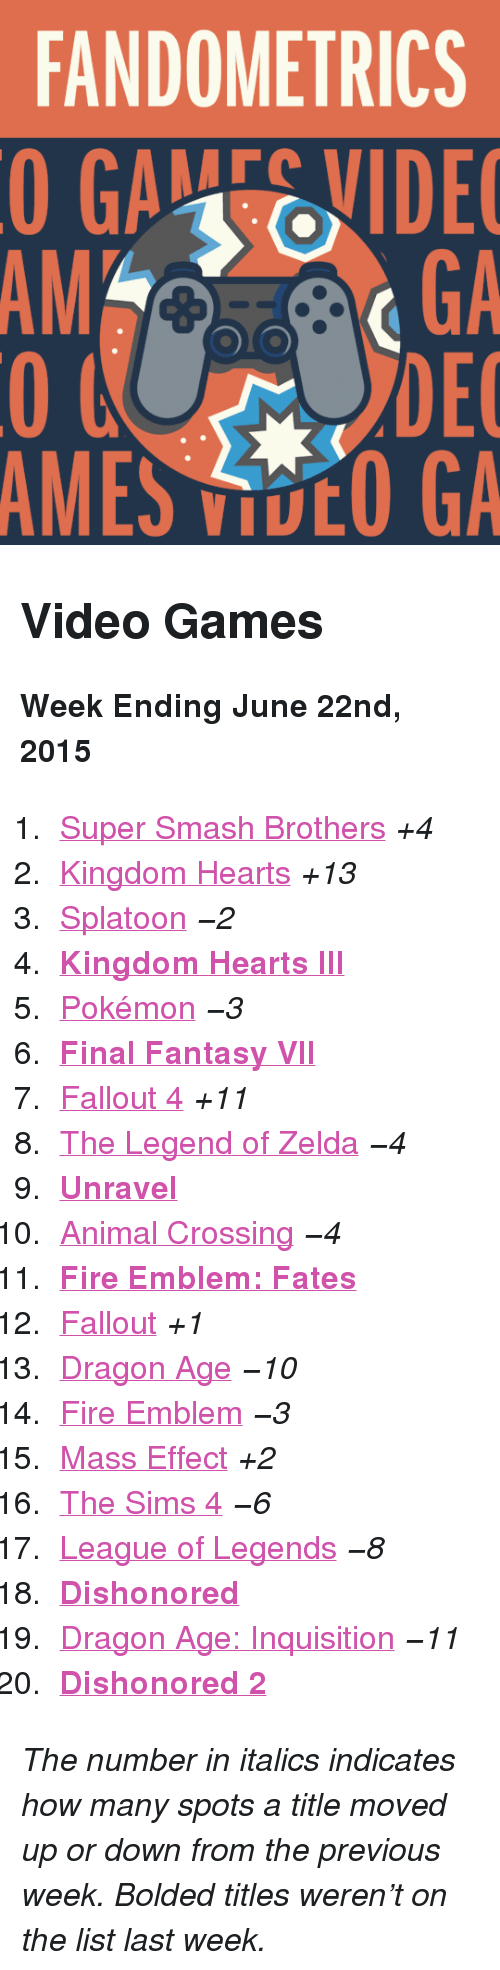 "Fallout 4, Fire, and League of Legends: FANDOMETRICS  GAEVIDE  GA  DEC  AMES VOO GA  AM <h2>Video Games</h2><p><b>Week Ending June 22nd, 2015</b></p><ol><li><a href=""http://www.tumblr.com/search/super%20smash%20bros"">Super Smash Brothers</a> <i>+4</i></li>  <li><a href=""http://www.tumblr.com/search/kingdom%20hearts"">Kingdom Hearts</a> <i>+13</i></li>  <li><a href=""http://www.tumblr.com/search/splatoon"">Splatoon</a> <i>−2</i></li>  <li><a href=""http://www.tumblr.com/search/kh3""><b>Kingdom Hearts III</b></a></li>  <li><a href=""http://www.tumblr.com/search/pokemon"">Pokémon</a> <i>−3</i></li>  <li><a href=""http://www.tumblr.com/search/final%20fantasy%20vii""><b>Final Fantasy VII</b></a></li>  <li><a href=""http://www.tumblr.com/search/fallout%204"">Fallout 4</a> <i>+11</i></li>  <li><a href=""http://www.tumblr.com/search/legend%20of%20zelda"">The Legend of Zelda</a> <i>−4</i></li>  <li><a href=""http://www.tumblr.com/search/unravel""><b>Unravel</b></a></li>  <li><a href=""http://www.tumblr.com/search/acnl"">Animal Crossing</a> <i>−4</i></li>  <li><a href=""http://www.tumblr.com/search/fire%20emblem%20fates""><b>Fire Emblem: Fates</b></a></li>  <li><a href=""http://www.tumblr.com/search/fallout"">Fallout</a> <i>+1</i></li>  <li><a href=""http://www.tumblr.com/search/dragon%20age"">Dragon Age</a> <i>−10</i></li>  <li><a href=""http://www.tumblr.com/search/fire%20emblem"">Fire Emblem</a> <i>−3</i></li>  <li><a href=""http://www.tumblr.com/search/mass%20effect"">Mass Effect</a> <i>+2</i></li>  <li><a href=""http://www.tumblr.com/search/sims%204"">The Sims 4</a> <i>−6</i></li>  <li><a href=""http://www.tumblr.com/search/league%20of%20legends"">League of Legends</a> <i>−8</i></li>  <li><a href=""http://www.tumblr.com/search/dishonored""><b>Dishonored</b></a></li>  <li><a href=""http://www.tumblr.com/search/dragon%20age%20inquisition"">Dragon Age: Inquisition</a> <i>−11</i></li>  <li><a href=""http://www.tumblr.com/search/dishonored%202""><b>Dishonored 2</b></a></li></ol><p><i>The number in italics indicates how many spots a title moved up or down from the previous week. Bolded titles weren't on the list last week.</i></p>"